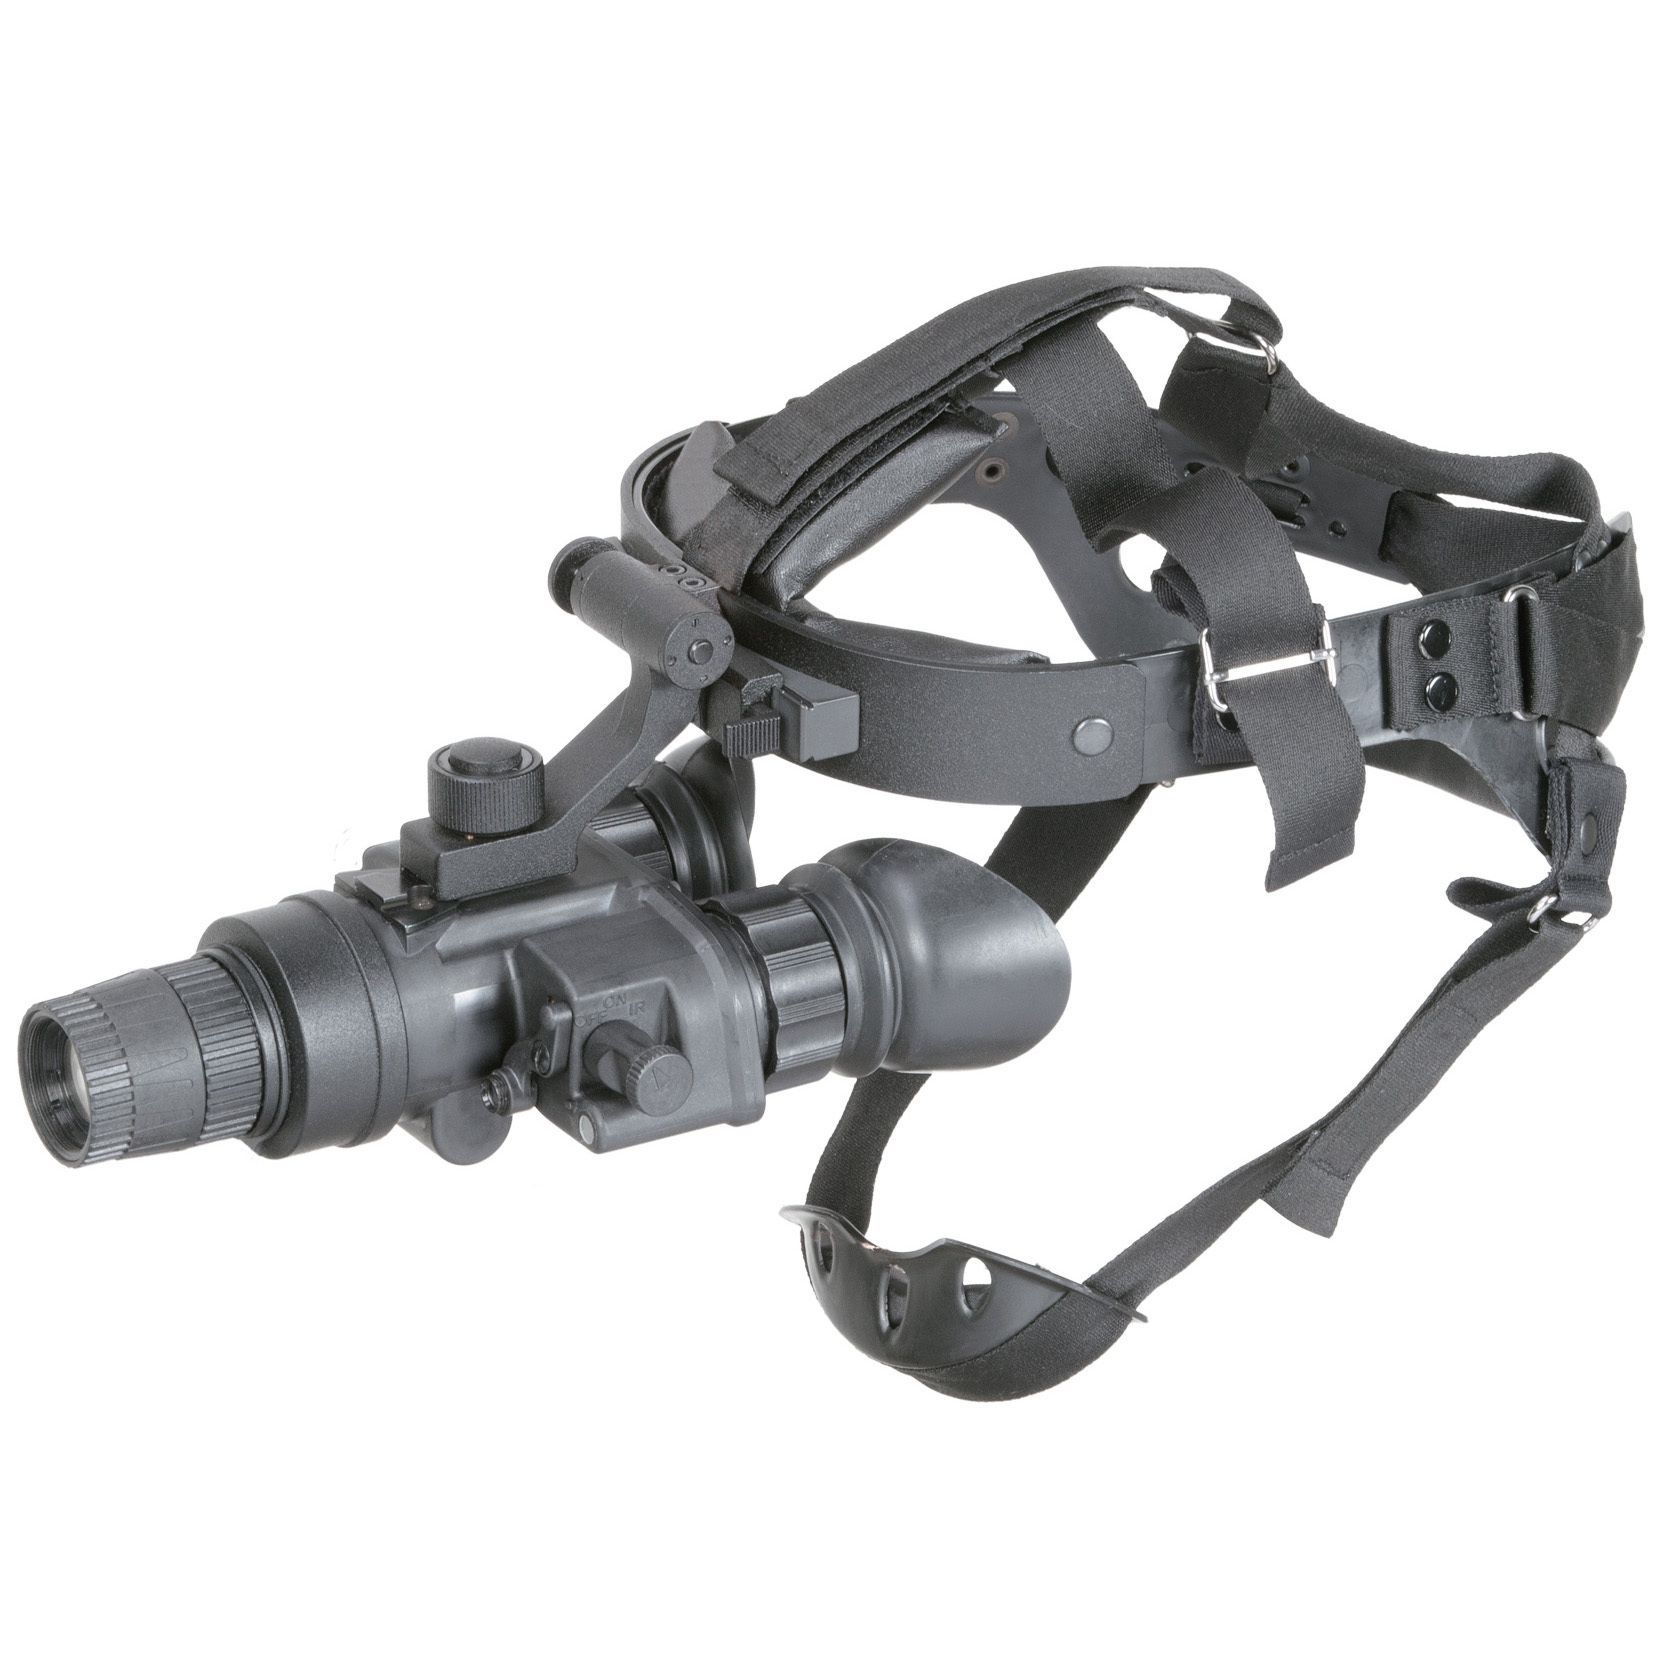 "Armasight Nyx7 Pro Gen 3 Bravo MG Night Vision Goggles pull in the darkest nights with up to 64 lp / mm resolution... adjustable gain built in! Rugged dependable night vision performance that won't weigh you down, and a price that keeps your purchase on budget! The Armasight Nyx7 Gen 3 Bravo MG Night Vision Goggles give you high-quality gen. 3 resolution of 57-64 lp / mm for crisp detail and maximum detection. And resolution isn't the only impressive feature. The Armasight Nyx7 is a night vision work-horse in a compact unit that packs in all the good stuff: Adjustable brightness control to customize your viewing, bright light shut-off circuitry, built-in IR illuminator with flood lens, larger 27mm objective and multi-coated optics... even an adjustable head mount kit with flip-up. Bring these features into focus: Gen. 3 high performance image intensifier tube is rated to an ultra sharp 64-72 lp / mm resolution Manual brightness control lets you fine-tune your image for best viewing... built in bright light cut-off 1X magnification Built-in infrared illuminator with flood lens provides invisible light when natural light is scarce Lens system: F1.2, 27mm... multi-coated glass lenses ensure crystal-clear views Focus: .25m to infinity 15mm eye relief 40 degrees F.O.V. Rugged, lightweight, waterproof and built for a wide range of applications Easy to use with simple control buttons and eyepiece-only focusing Includes adjustable head mount with flip-up for hands-free use Uses one 3V CR123 lithium battery (included) or AA batteries for up to 60 hrs of use Approx. 6 1/2"" x 4 1/2"" x 3"", 1 lbs. Own the night! - $3,714.99"